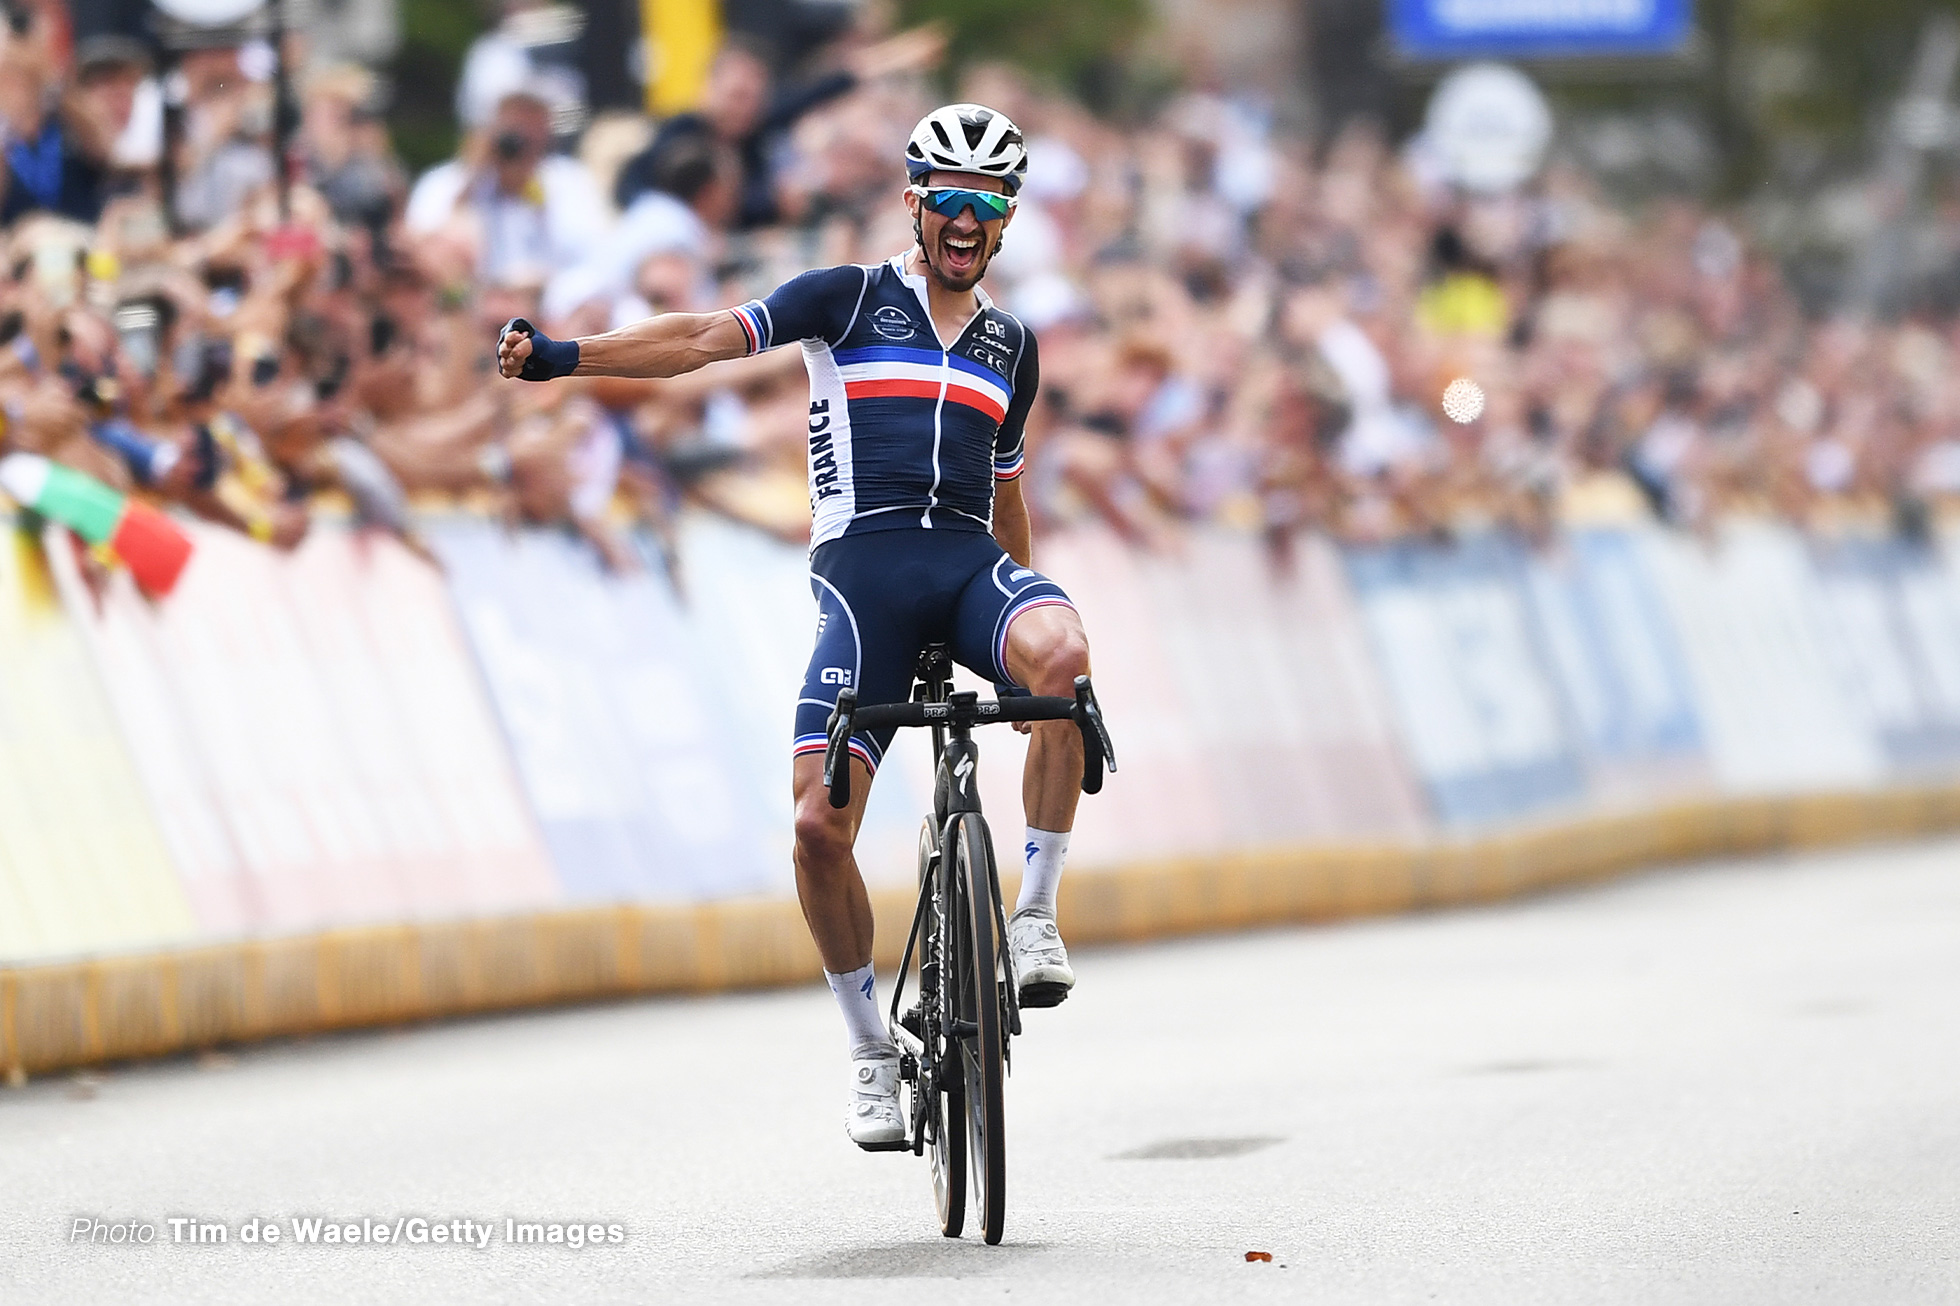 LEUVEN, BELGIUM - SEPTEMBER 26: Julian Alaphilippe of France celebrates at finish line as race winner during the 94th UCI Road World Championships 2021 - Men Elite Road Race a 268,3km race from Antwerp to Leuven / #flanders2021 / on September 26, 2021 in Leuven, Belgium. (Photo by Tim de Waele/Getty Images)